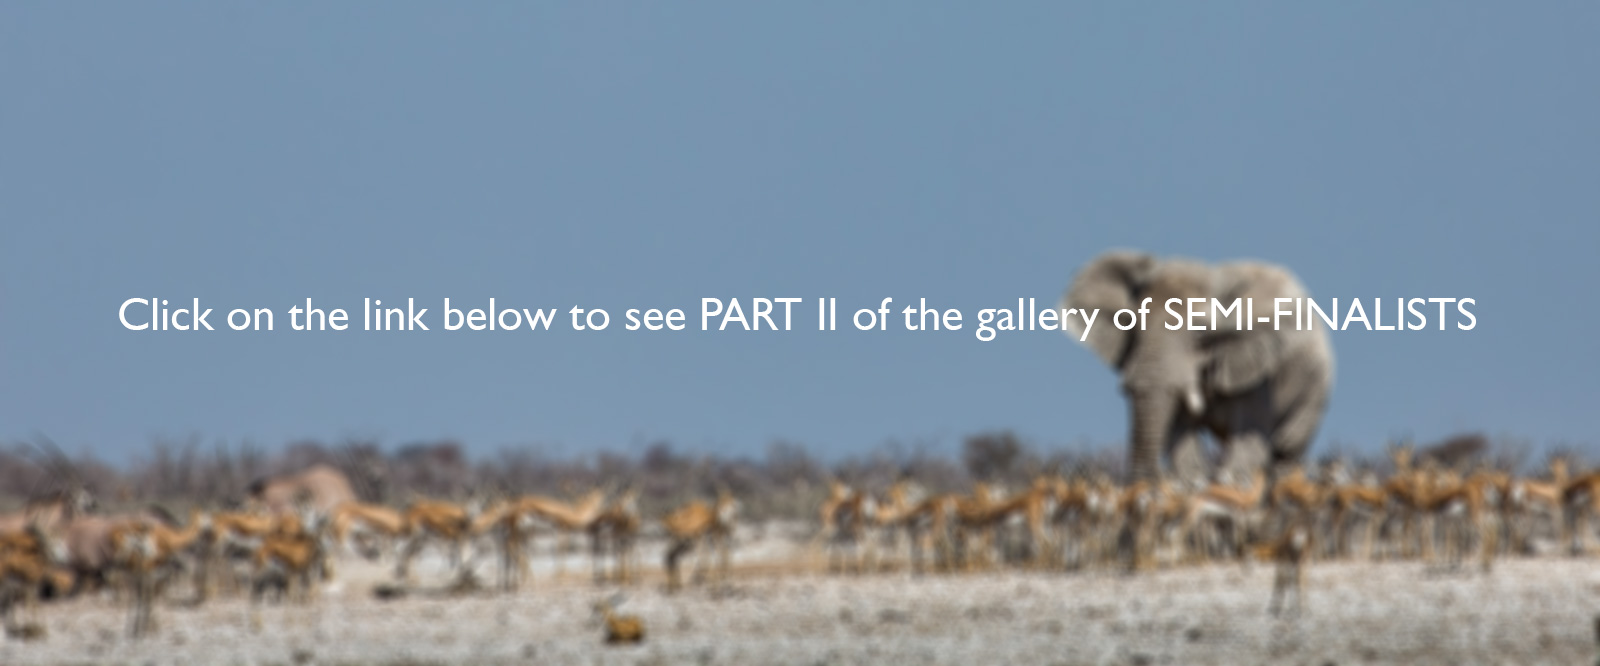 "Click <a href=""http://magazine.africageographic.com/weekly/issue-150/photographer-year-2017-semi-finalists-part-2/""target=""_blank"">here to see <b>PART II</b> of the gallery</a>"